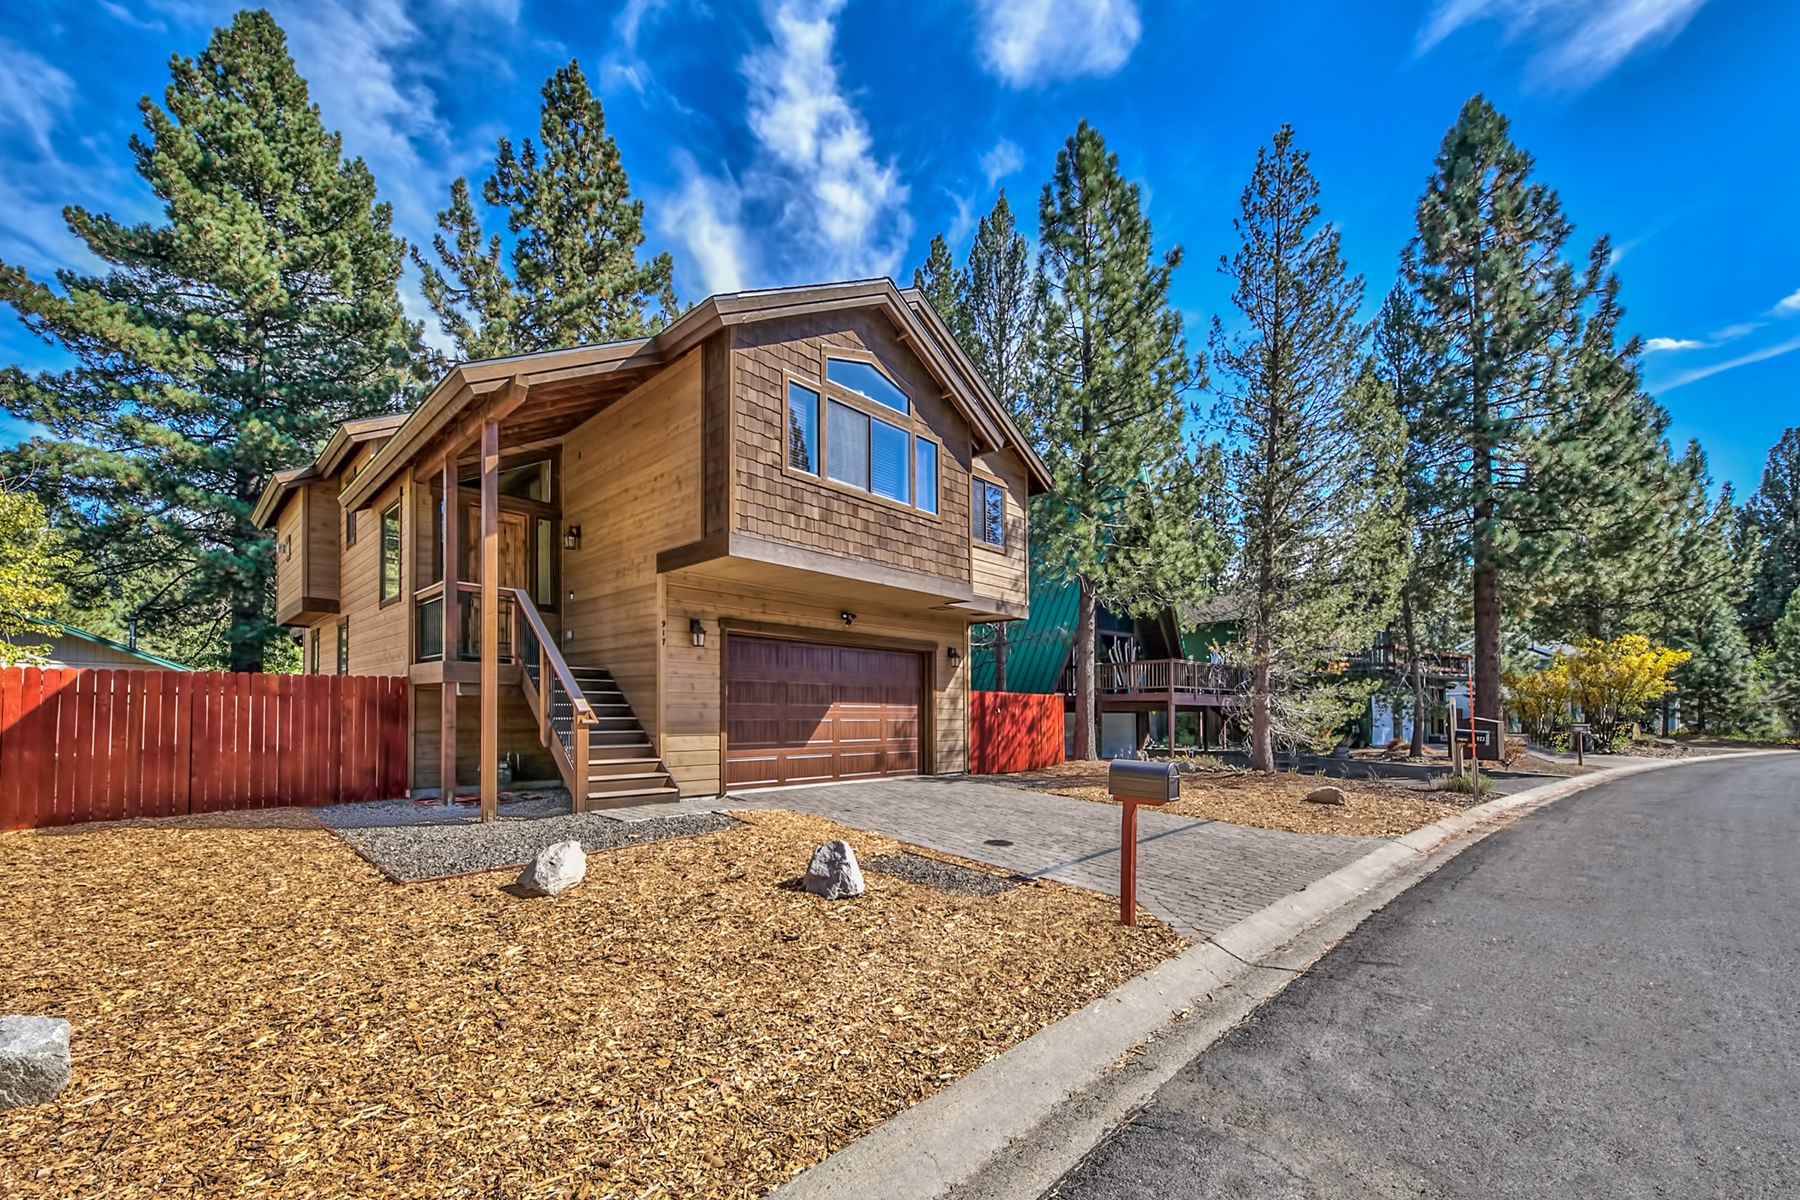 Single Family Home for Active at 917 Creekwood Drive, South Lake Tahoe, CA 96150 917 Creekwood Drive South Lake Tahoe, California 96150 United States